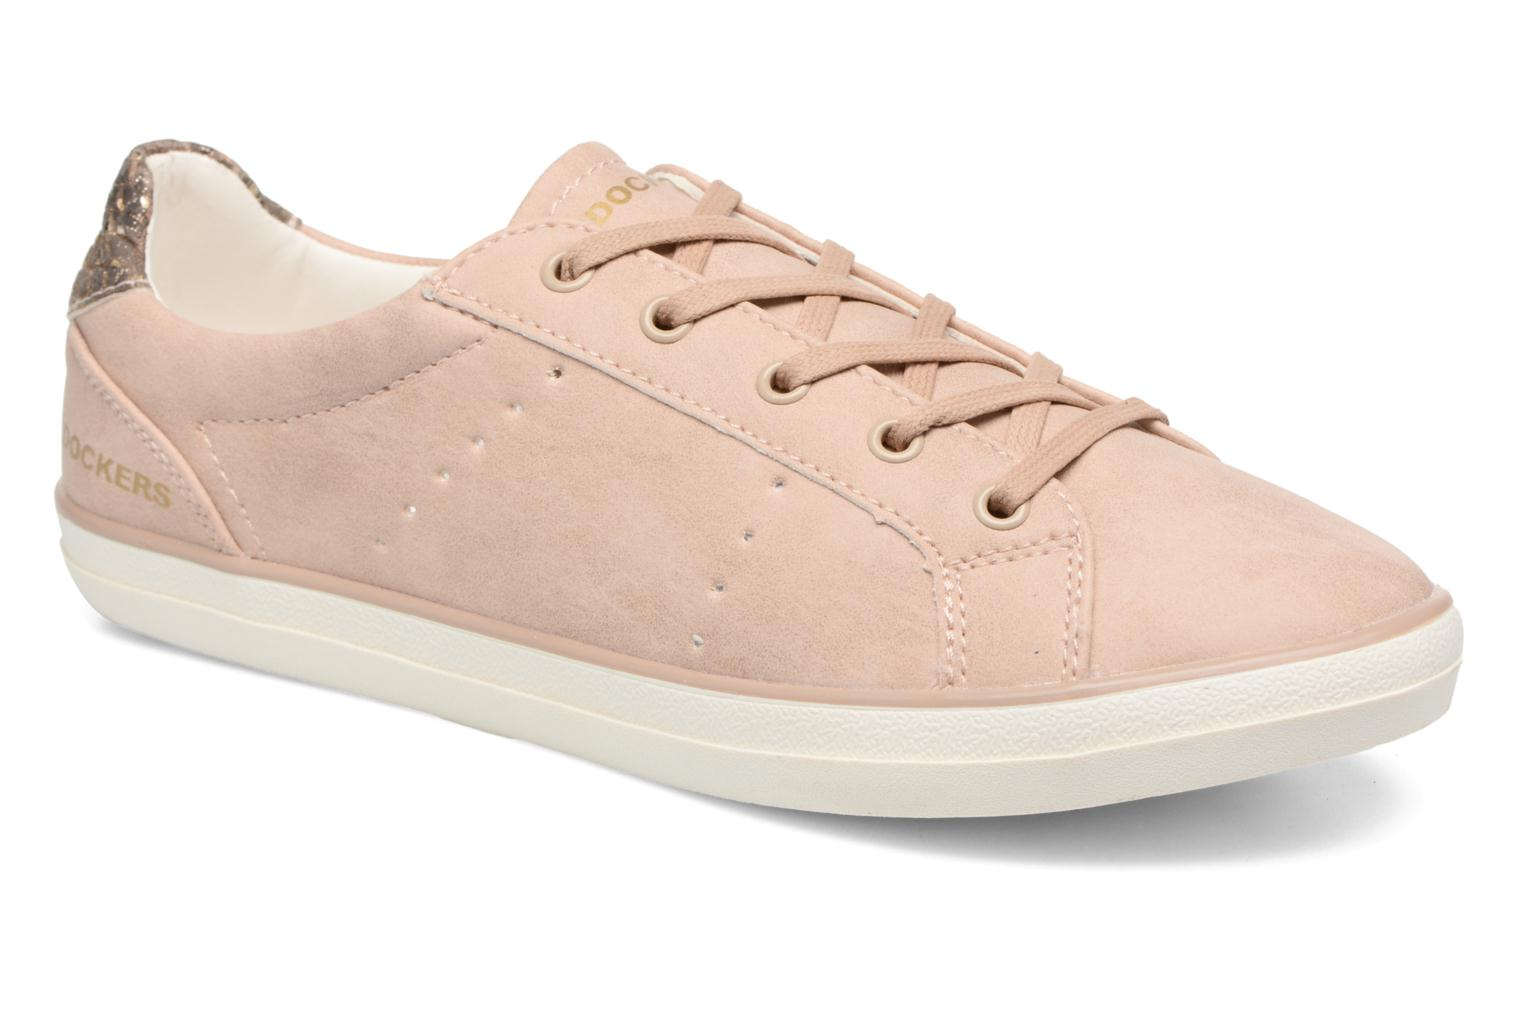 Dockers - Damen - Molly - Sneaker - rosa